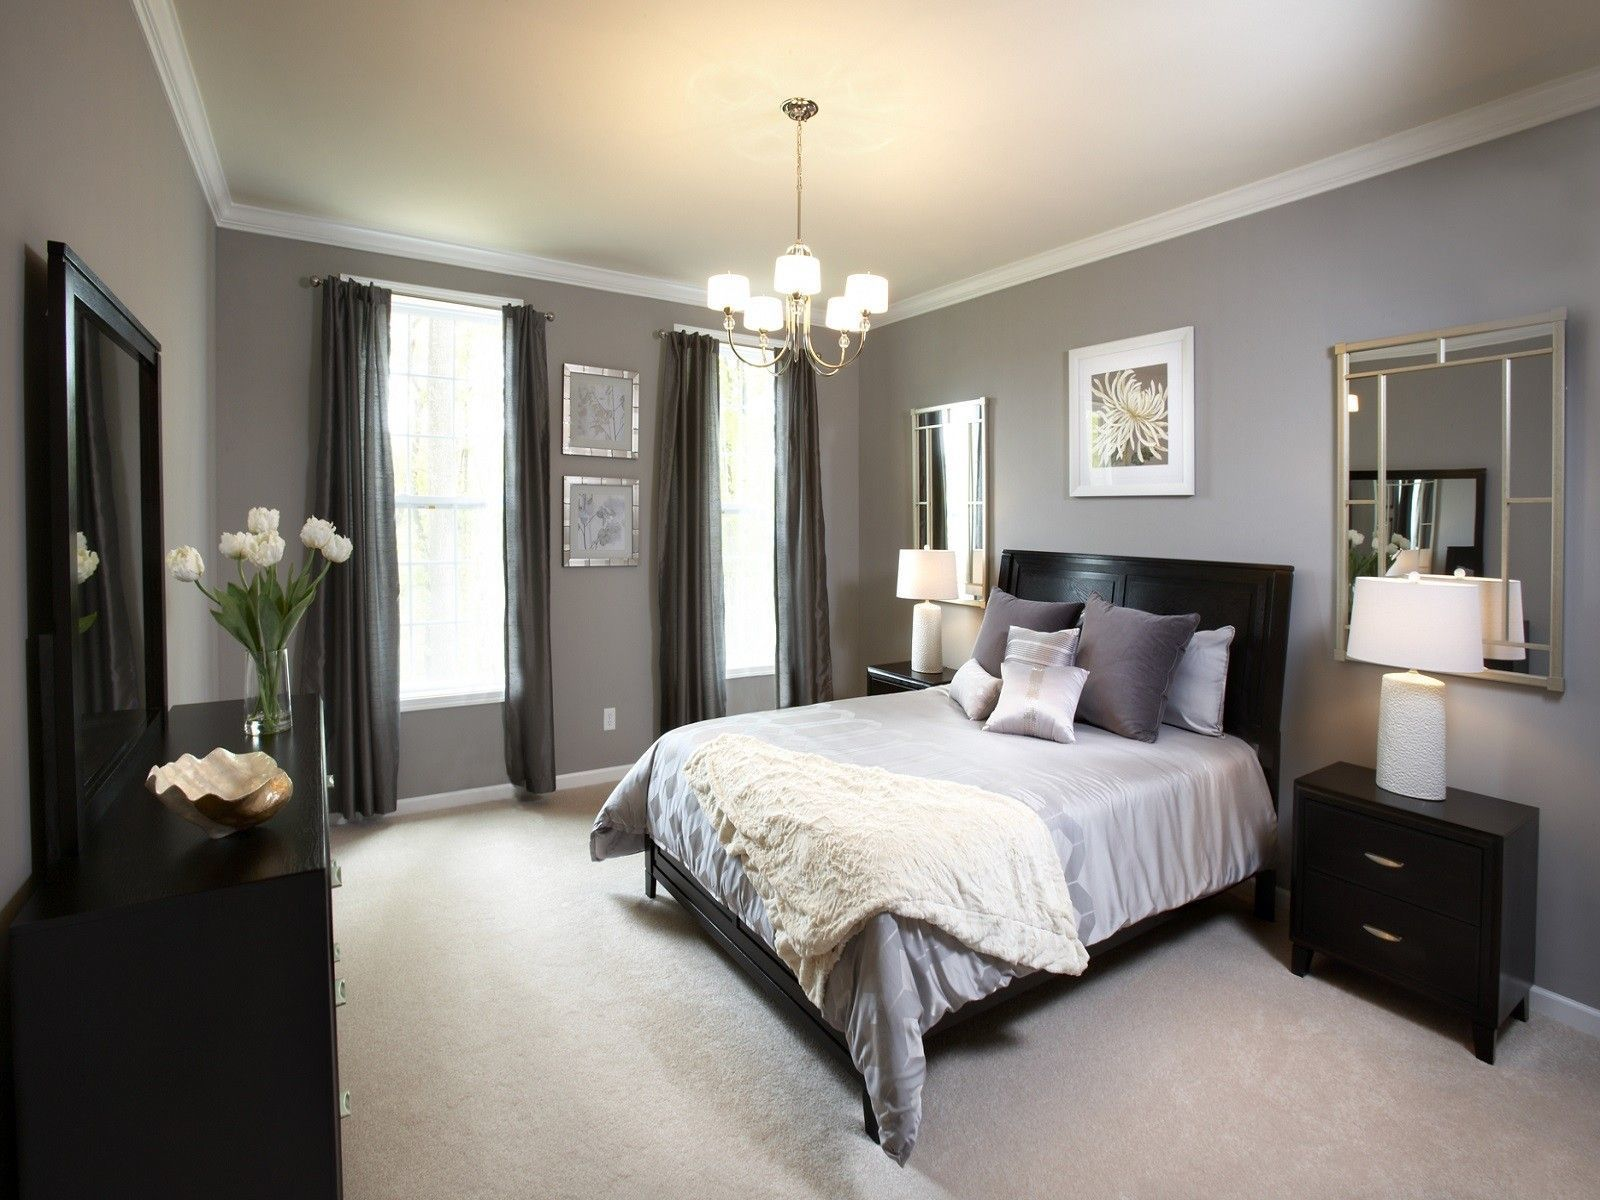 Easy Ways to Decorate a Small Master Bedroom